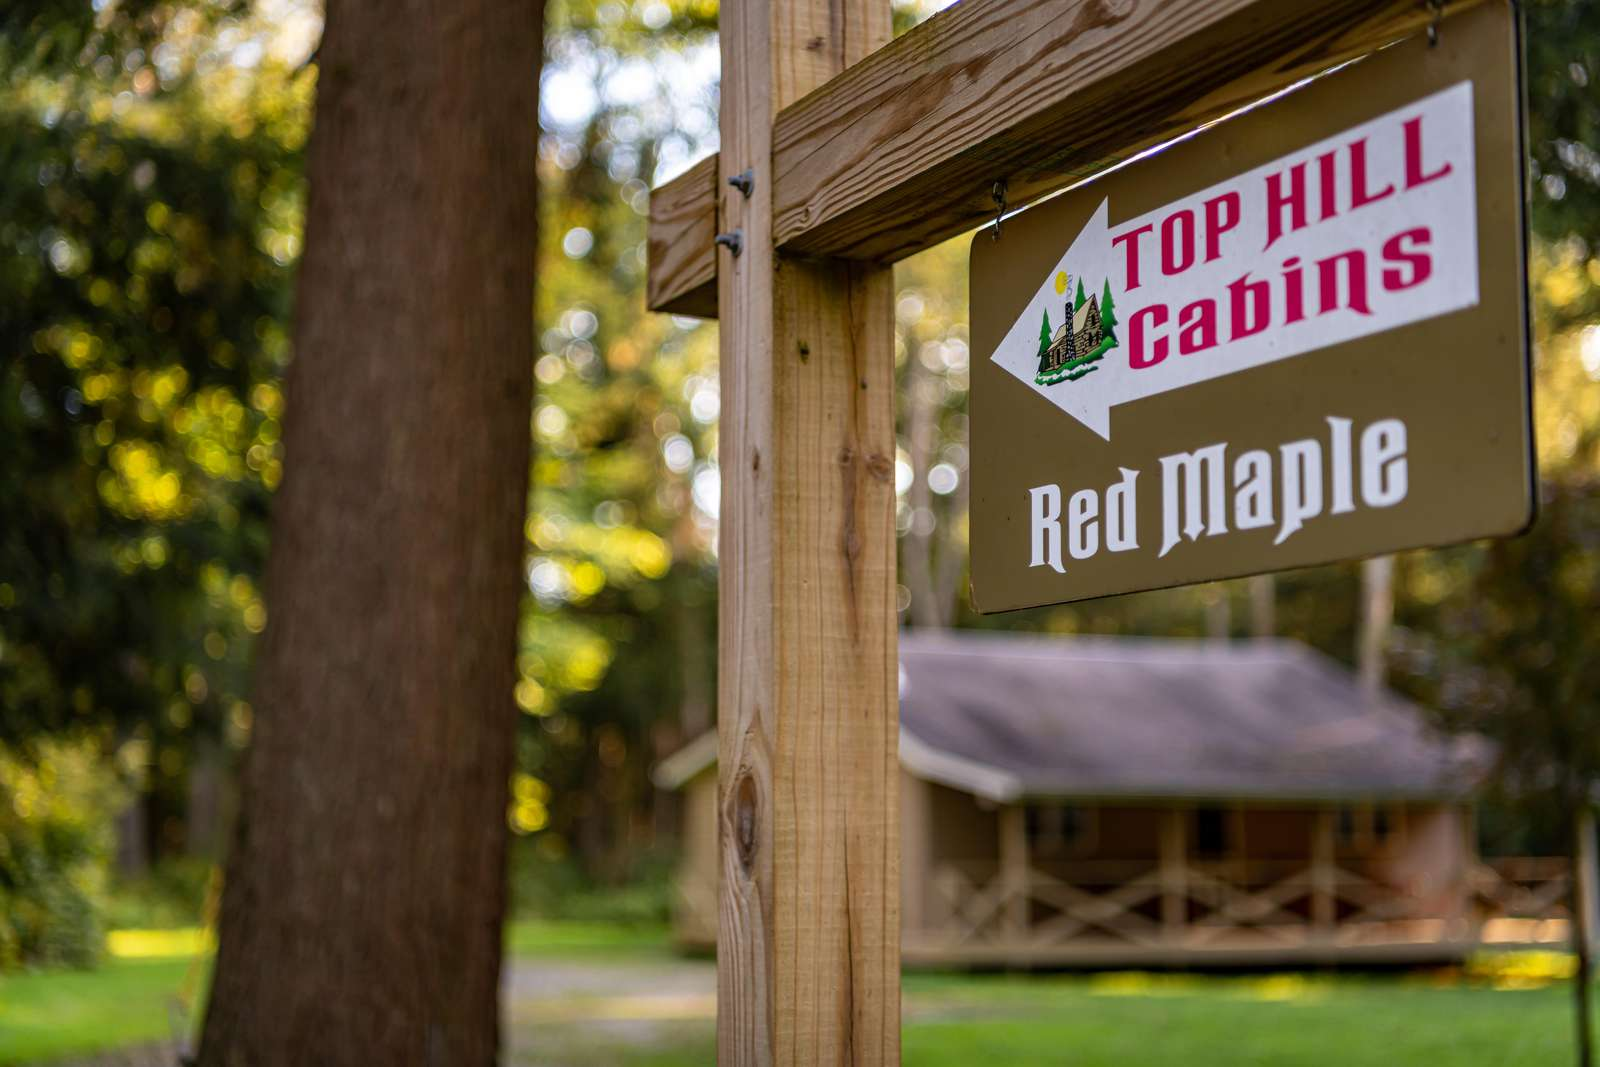 Red Maple Sign in front of the cabin